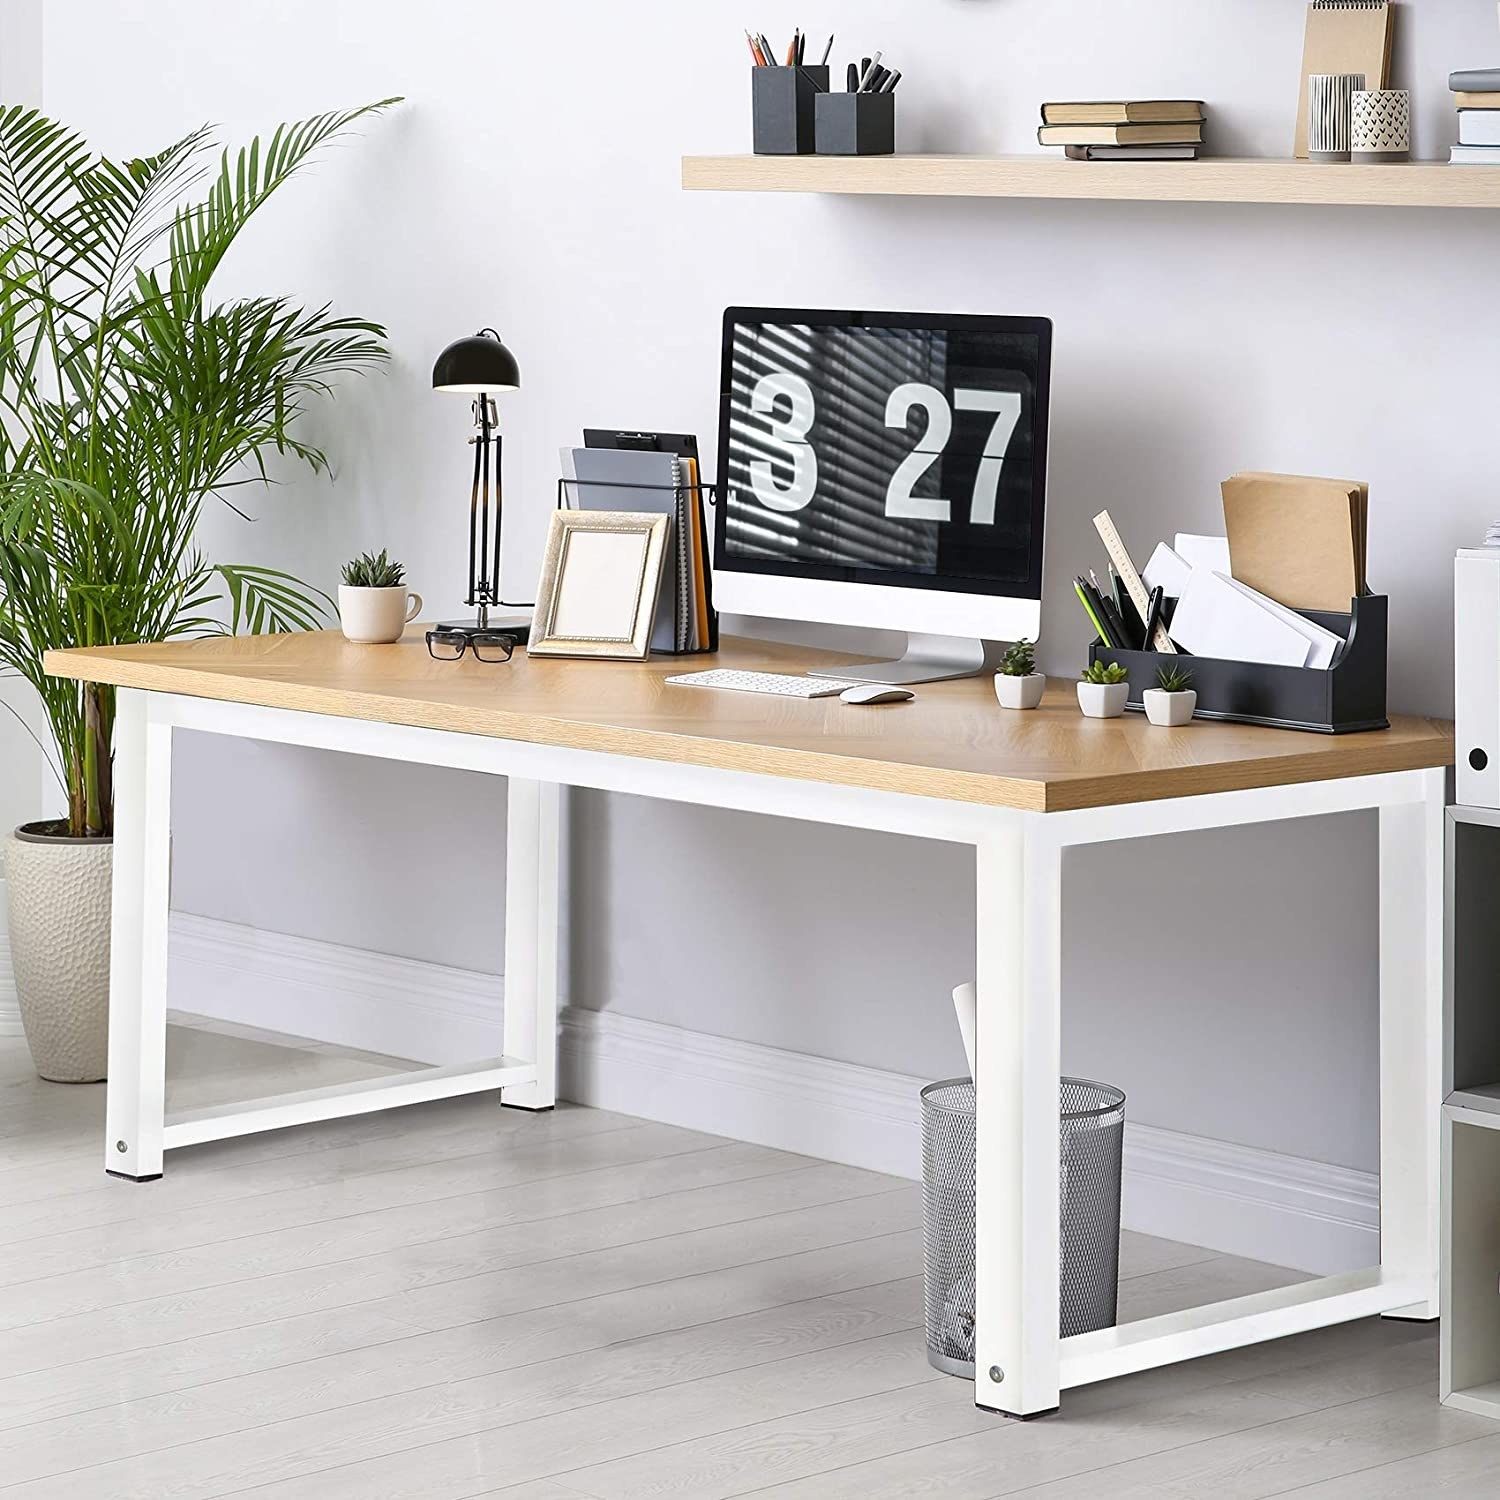 The walnut and white metal desk